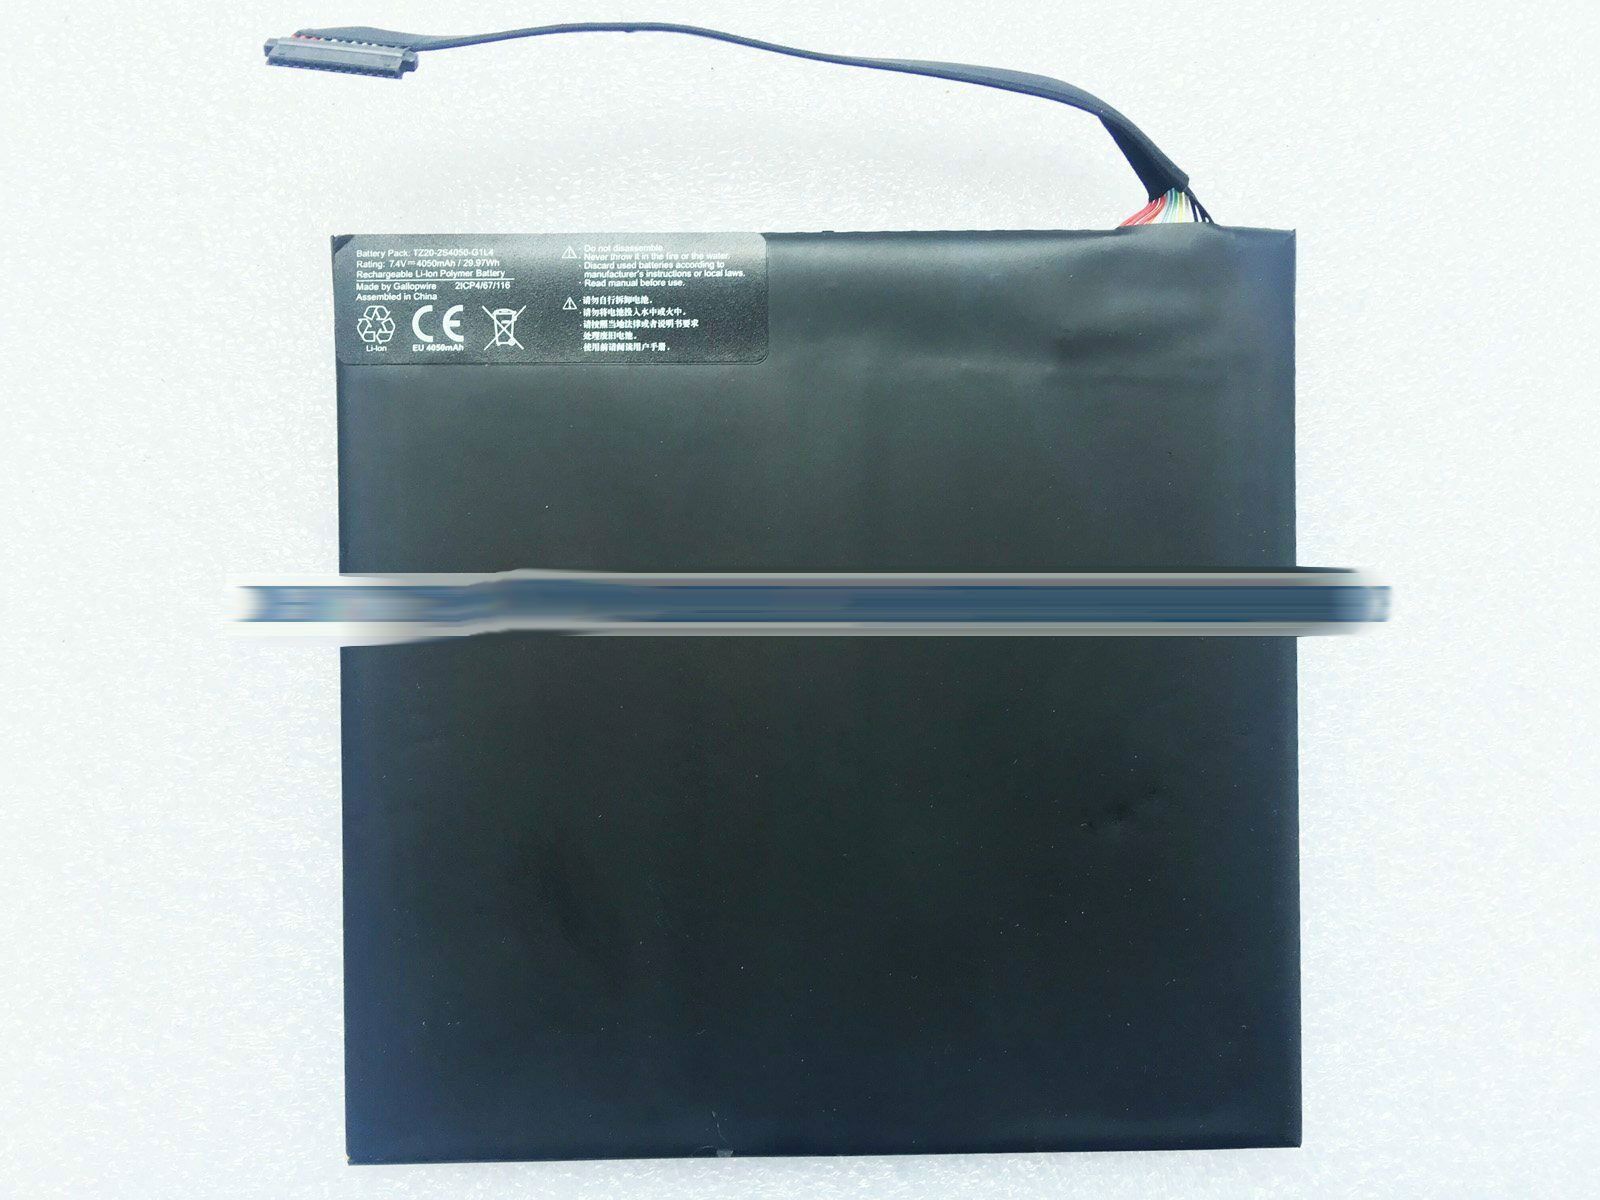 Authentique 30016810 TZ20-2S4050-G1L4 Batterie pour Medion Akoya P2212T (MD 99360)